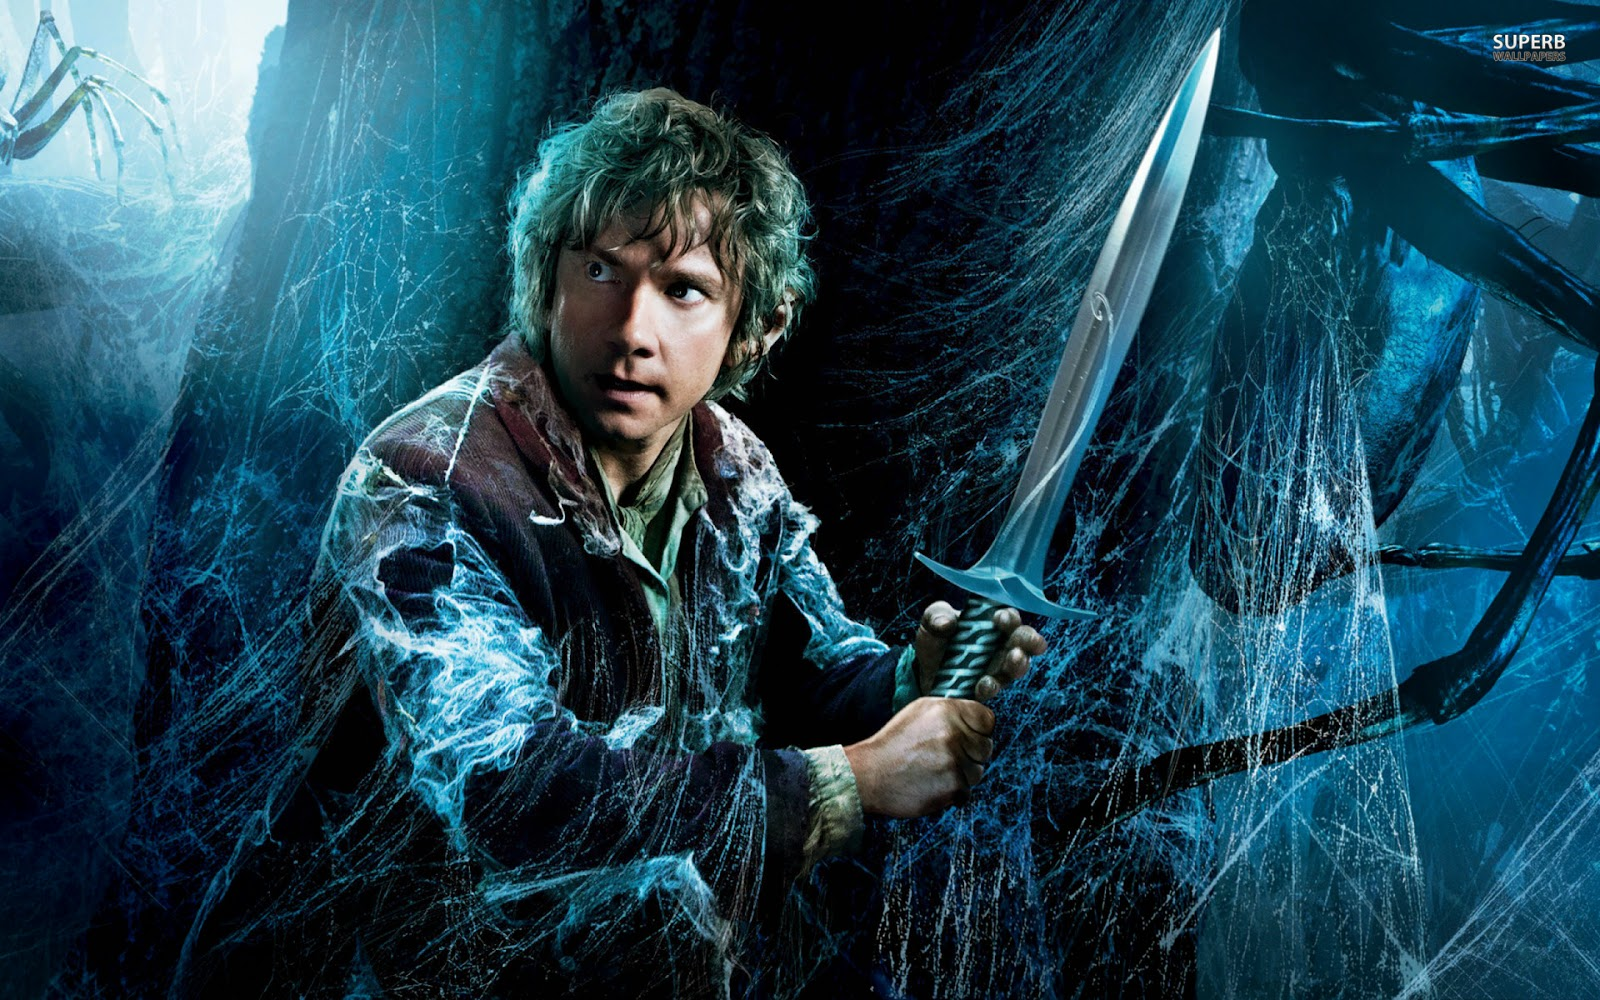 the hobbit the desolation of smaug awesome hd wallpapers 1920 x 1080 1600x1000